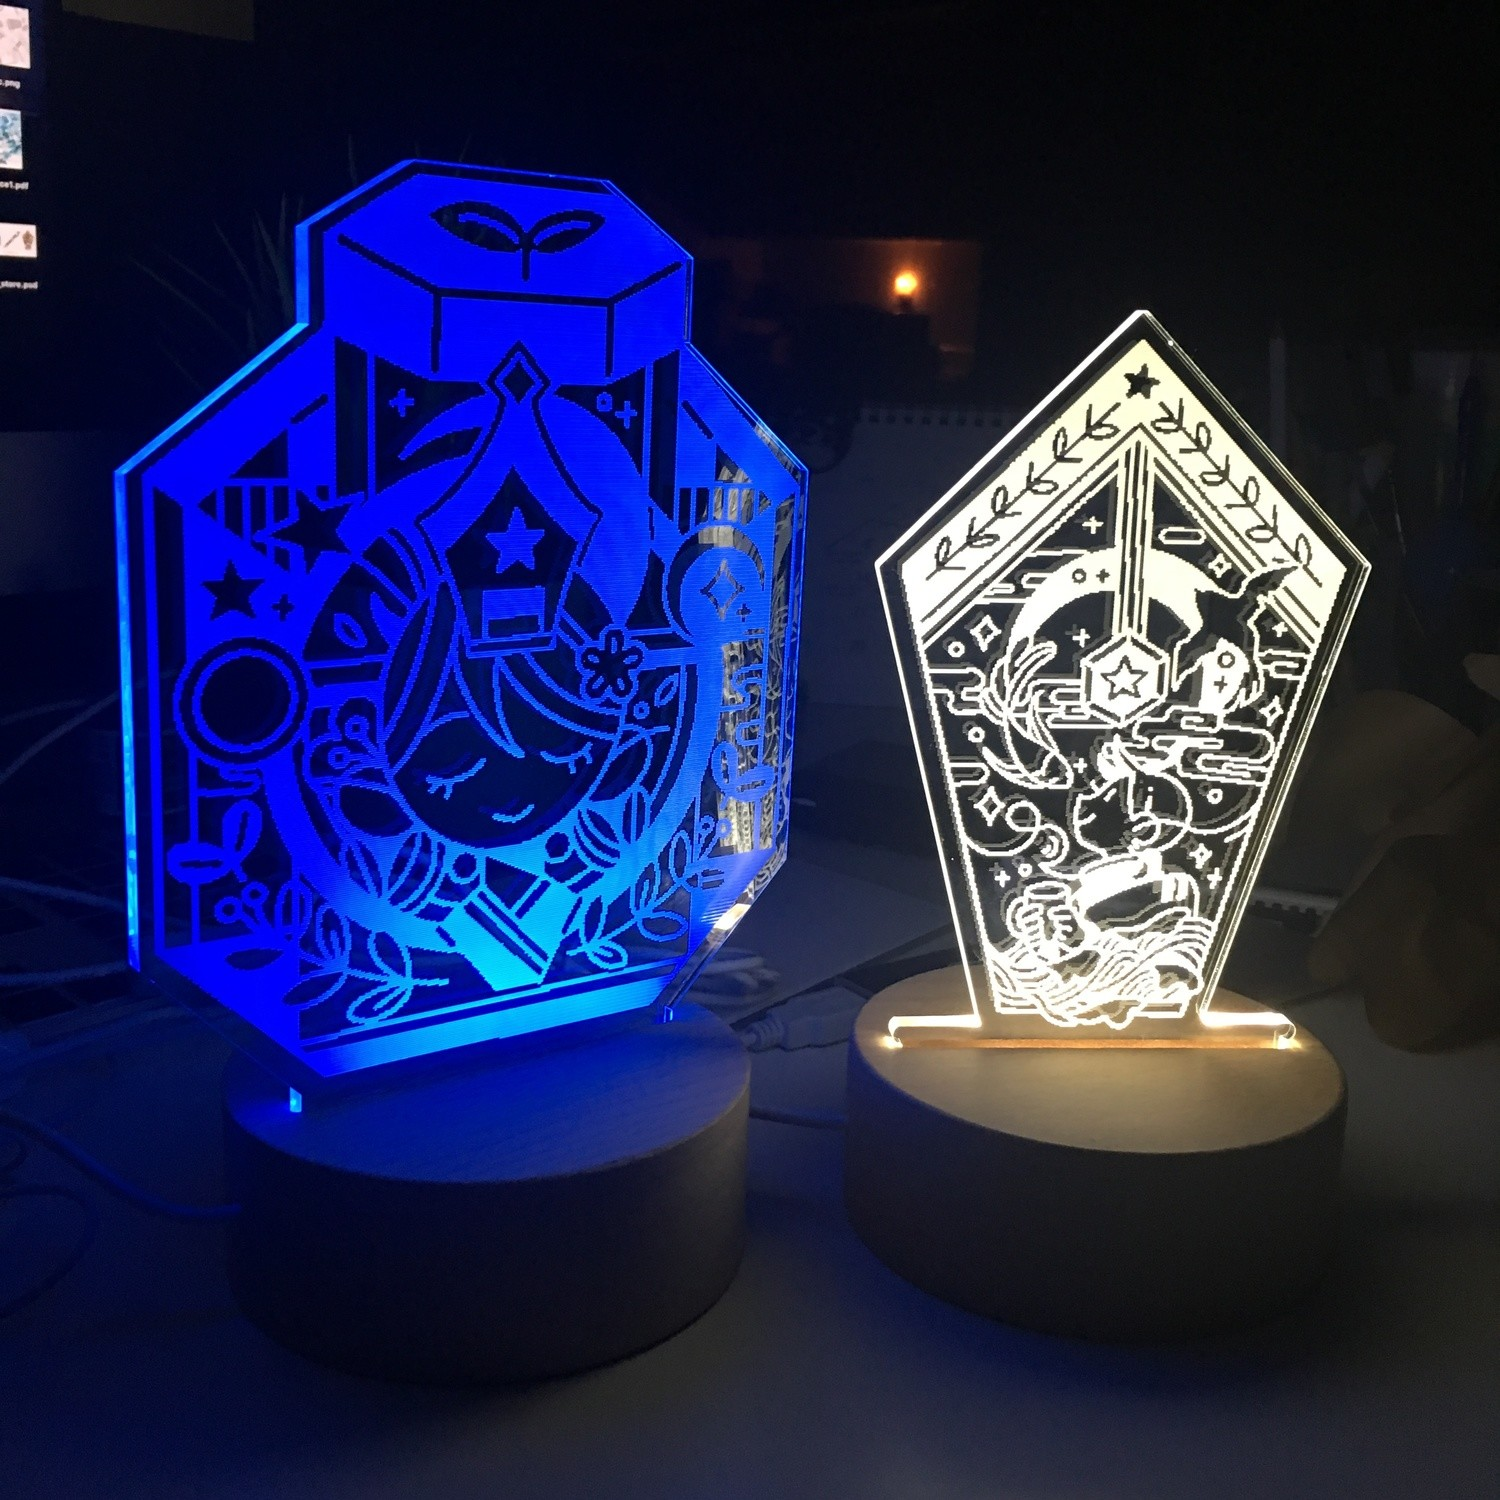 [PreOrder] Bottle/Nib Blue LED Light Stand + 3 Enamel Pins + Sticker Set